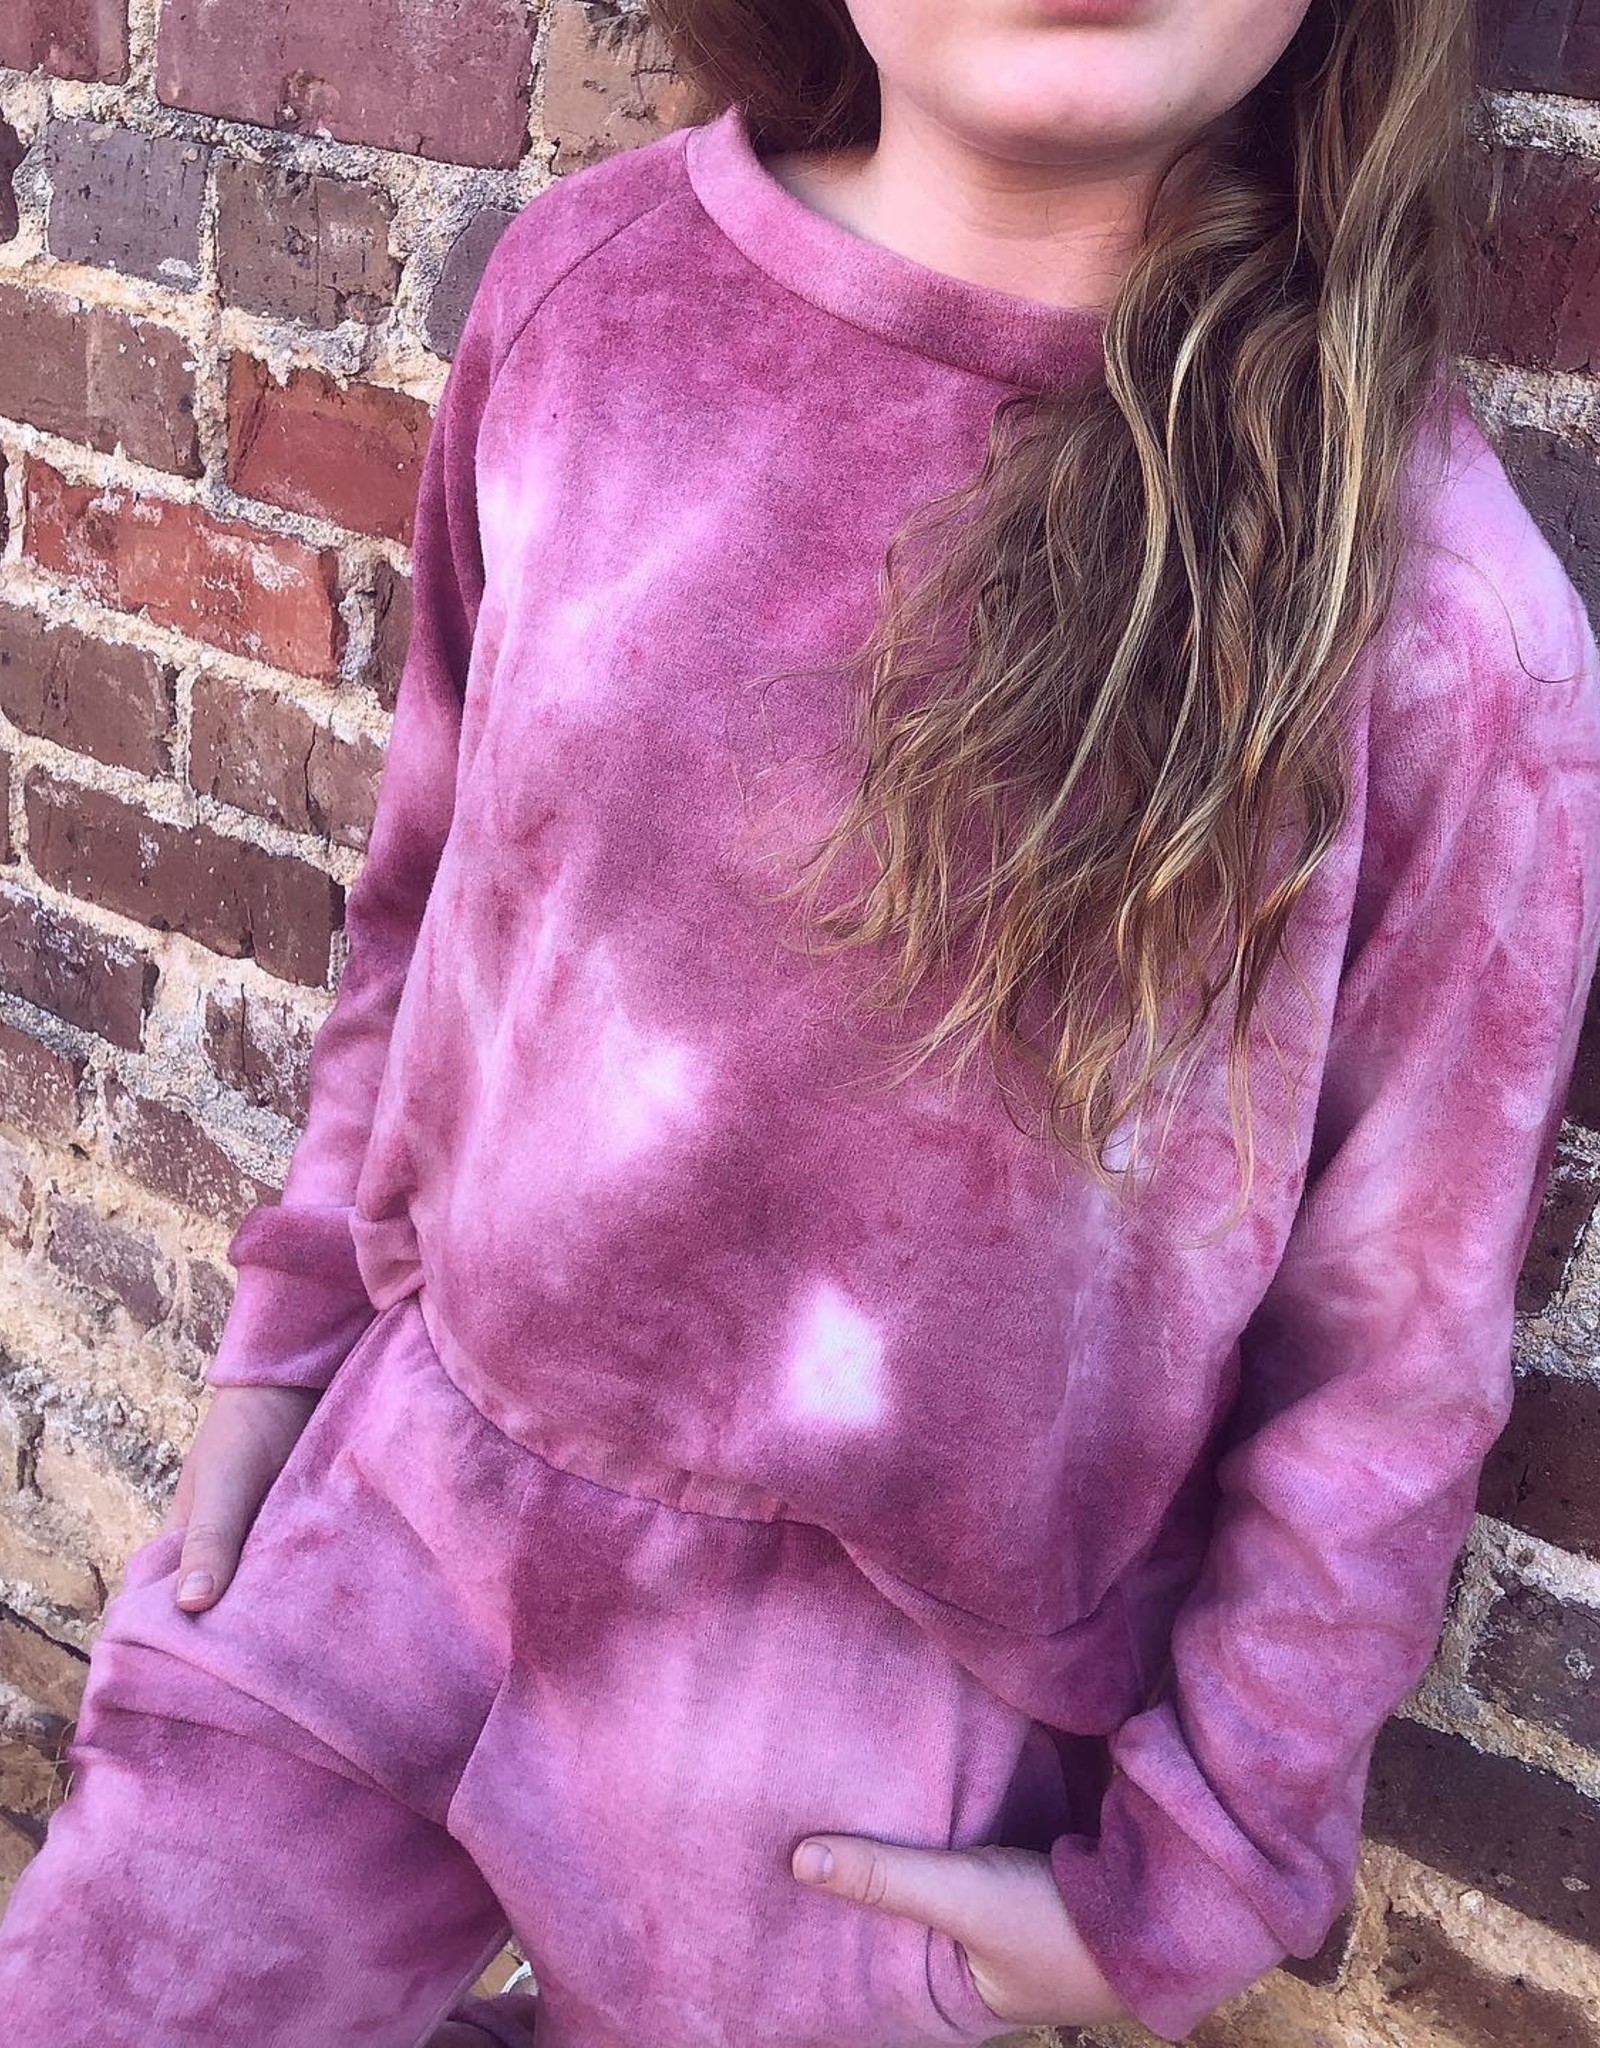 For All Seasons Pink TieDye Top